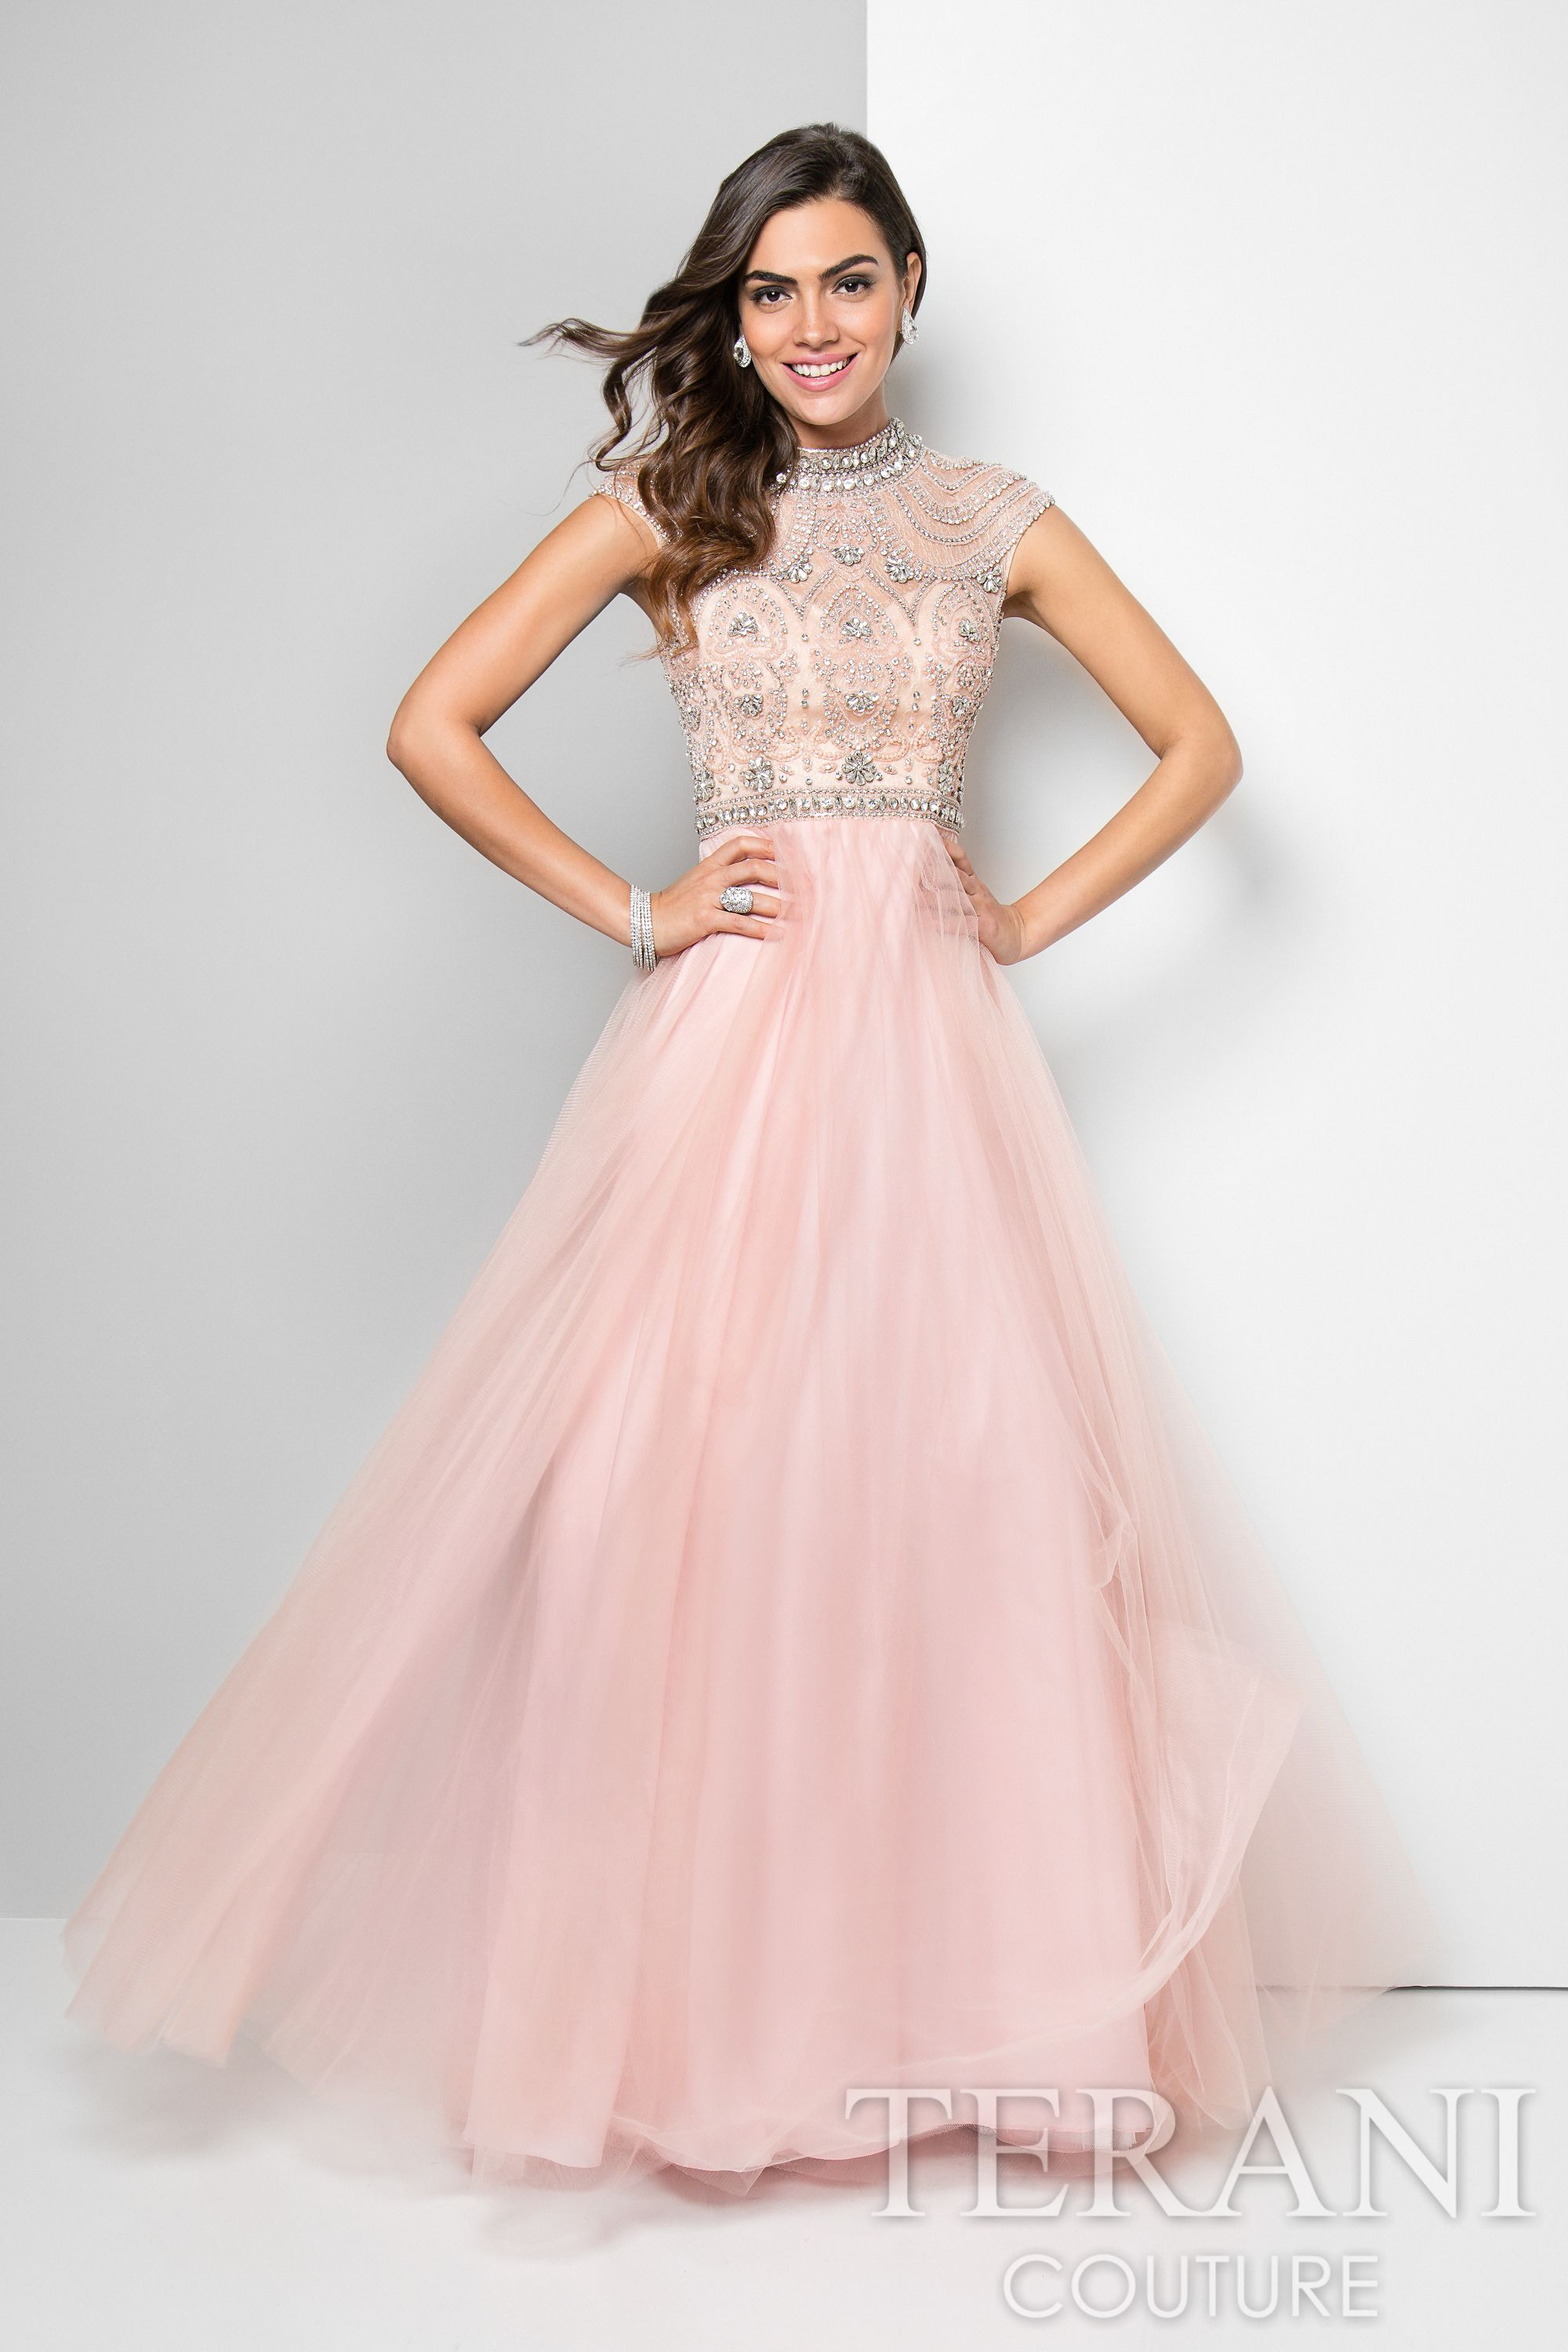 1712p2899_front-1-1 | Dresses | Pinterest | Tulle skirts, Special ...